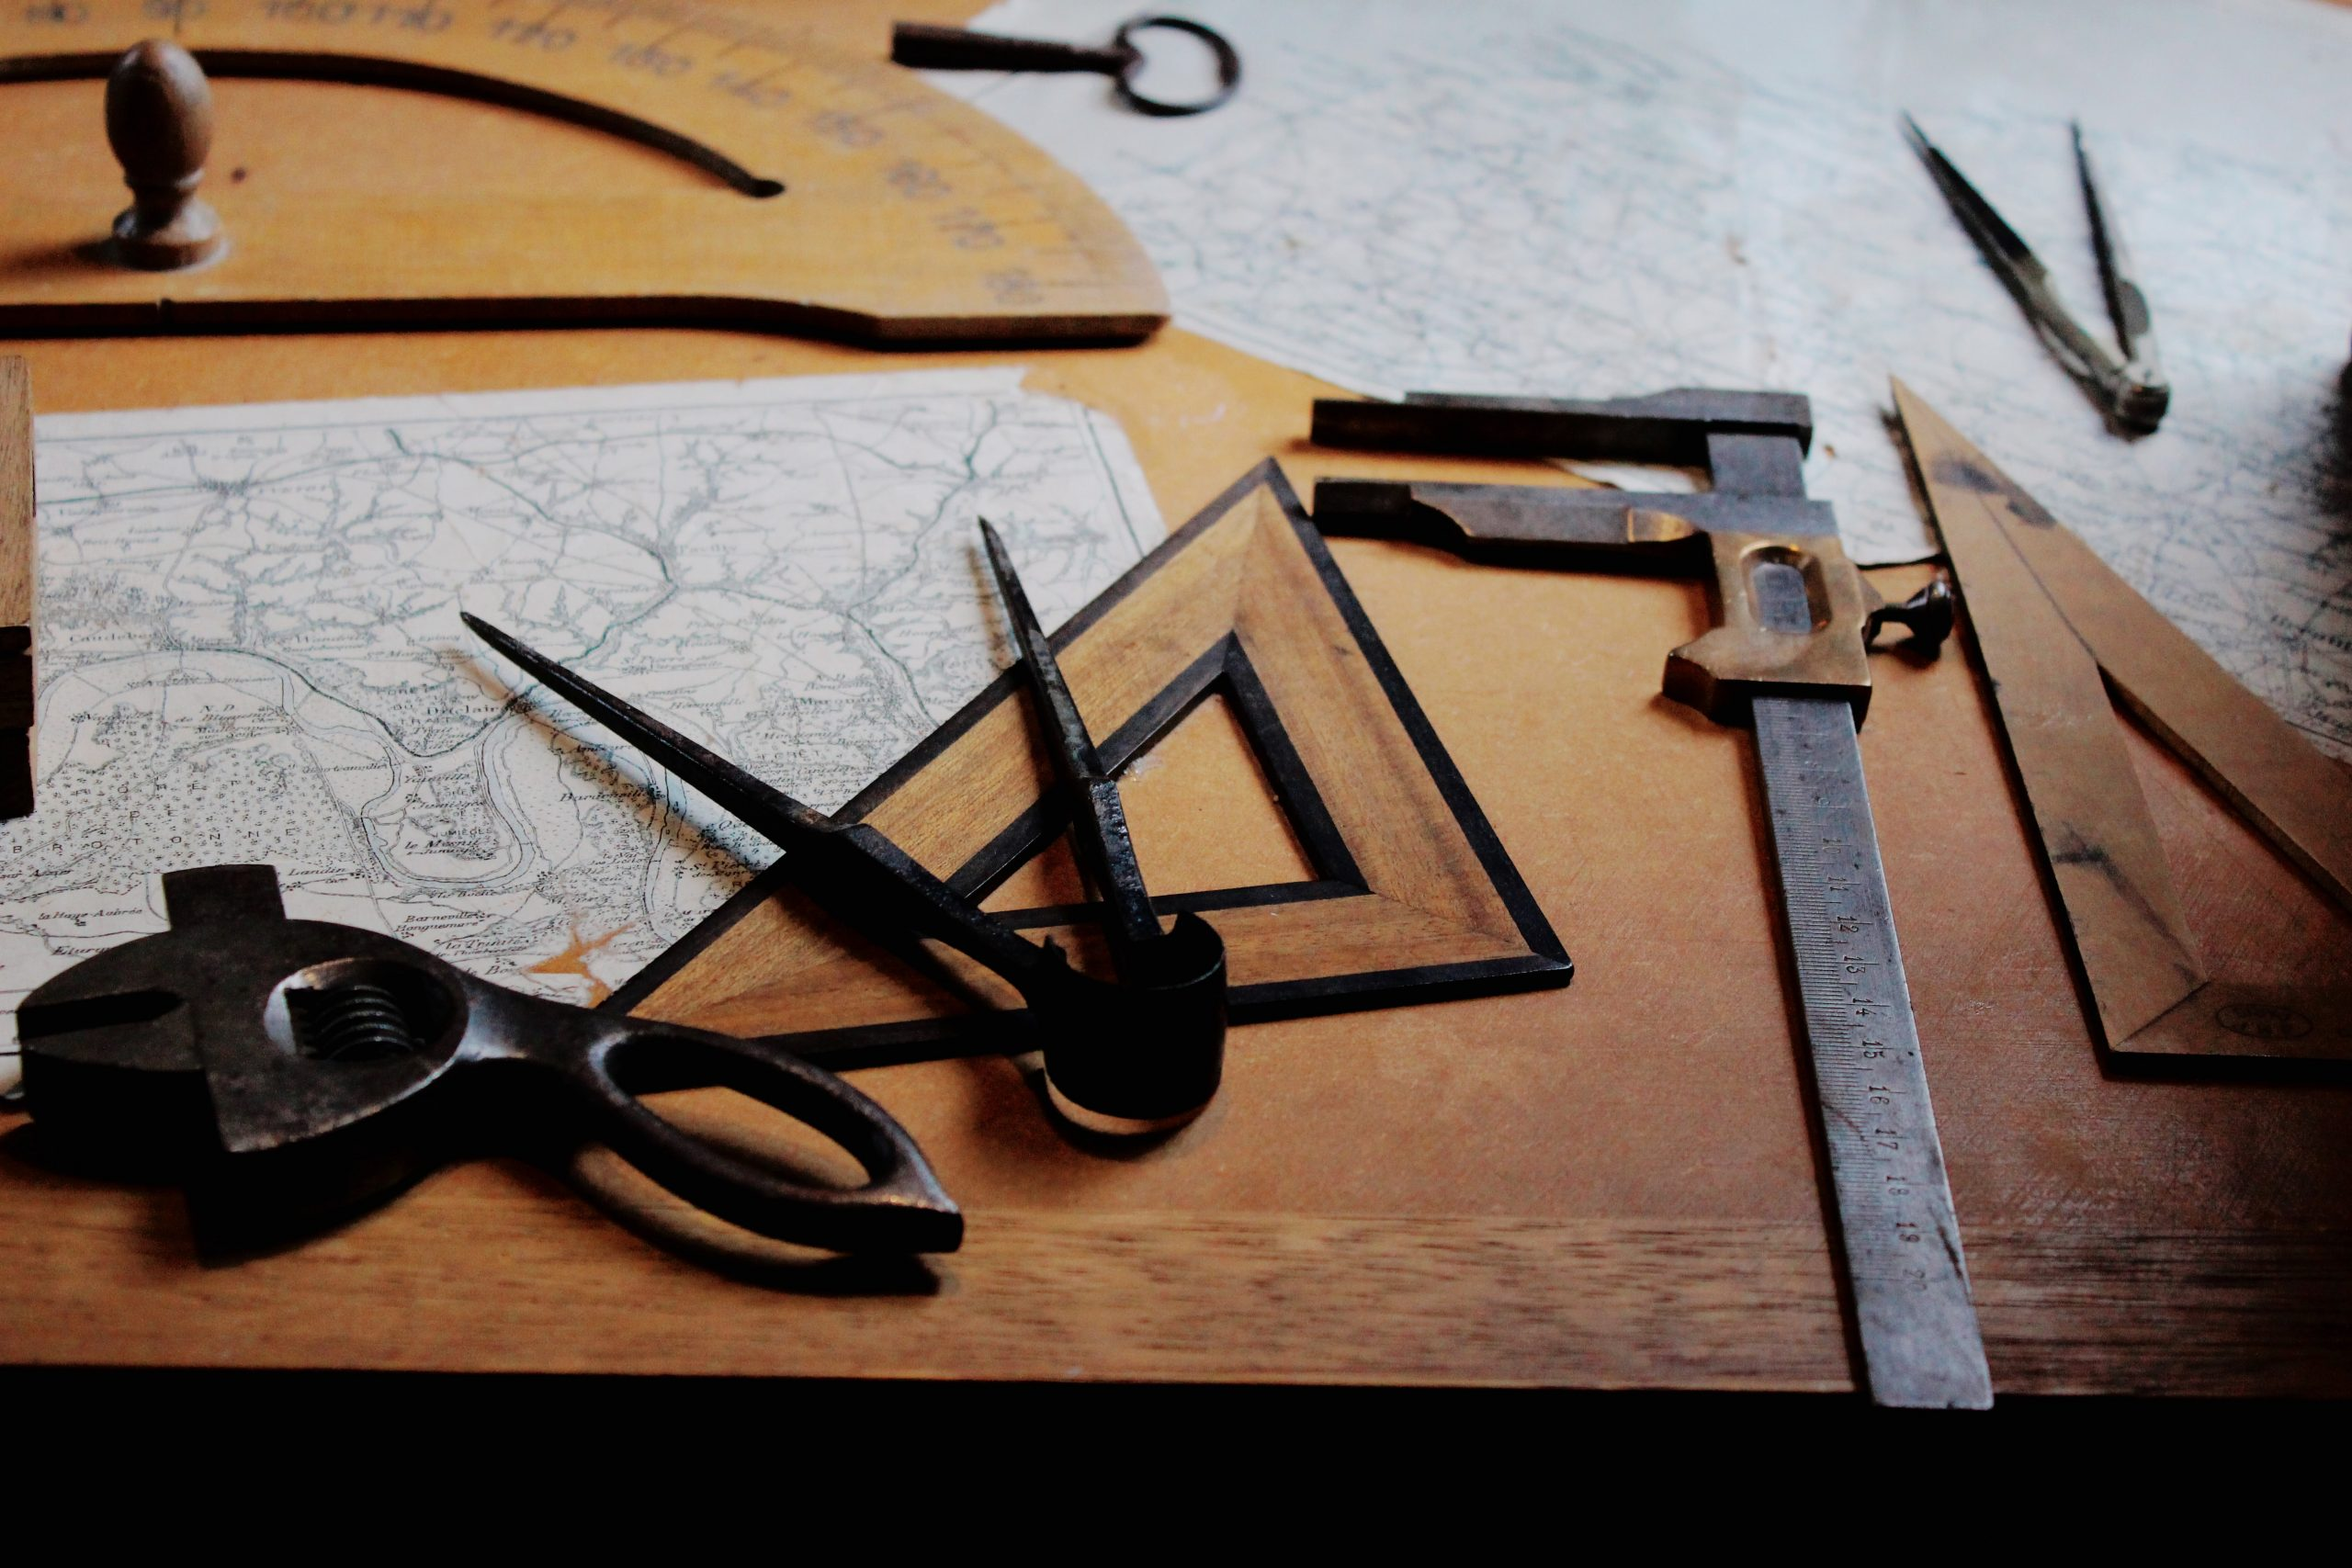 Ruler, compass and other measurement tools displayed on a desk.